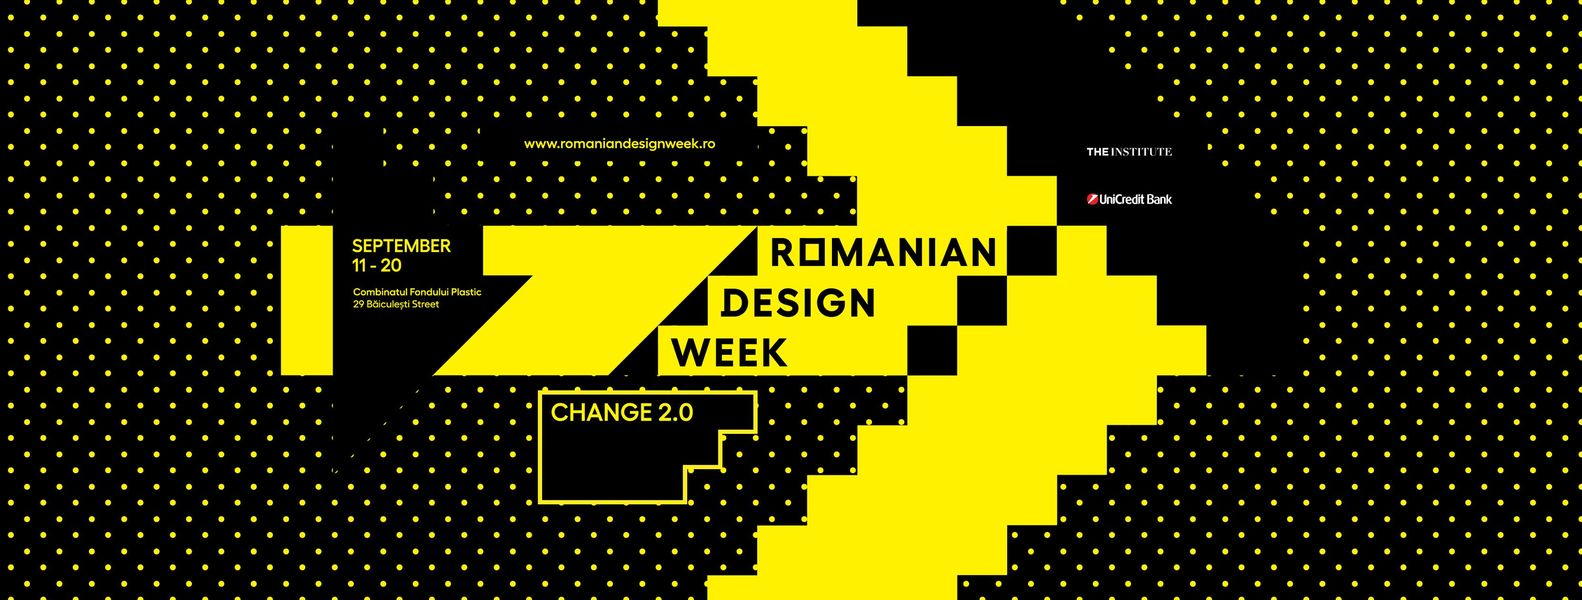 evenimente weekend 18-20 sept Romanian design Week